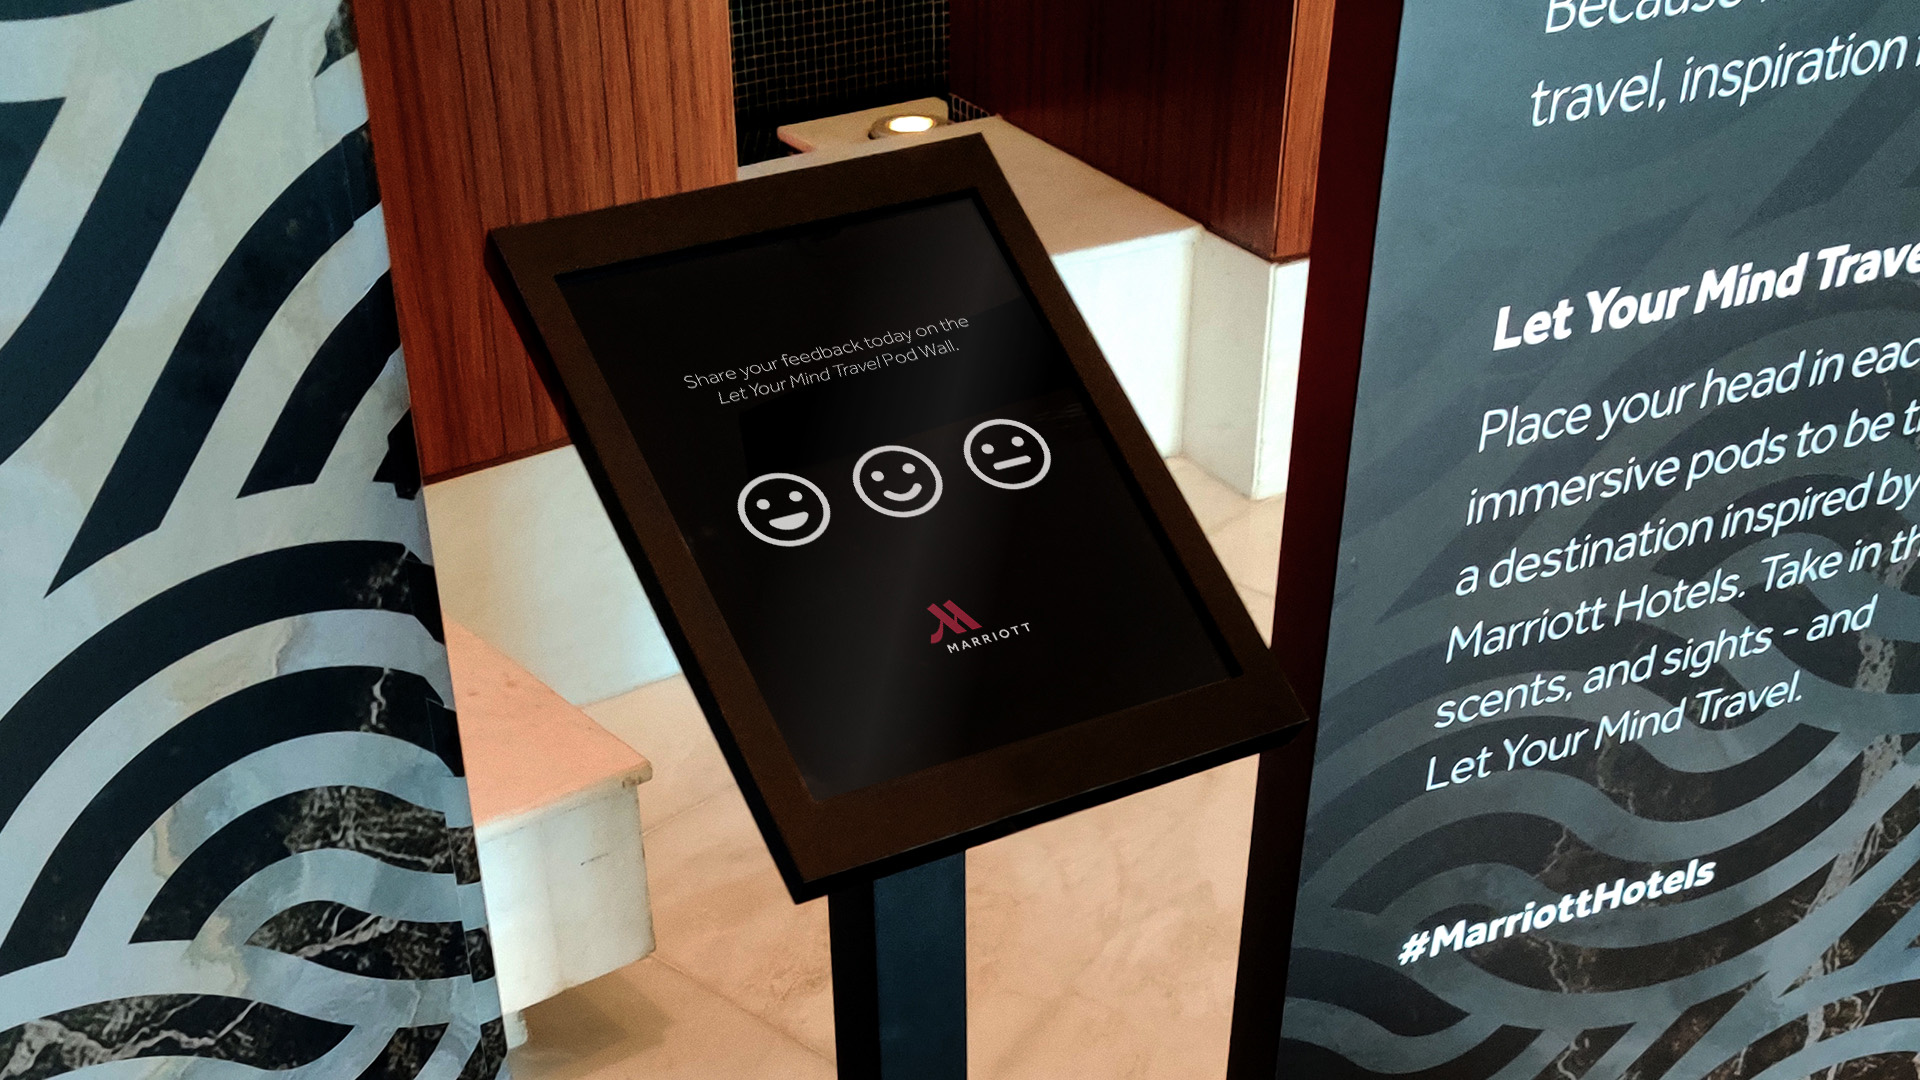 wall marriott interactive technology sensors scent touch eventagrate dubai tablet feedback form